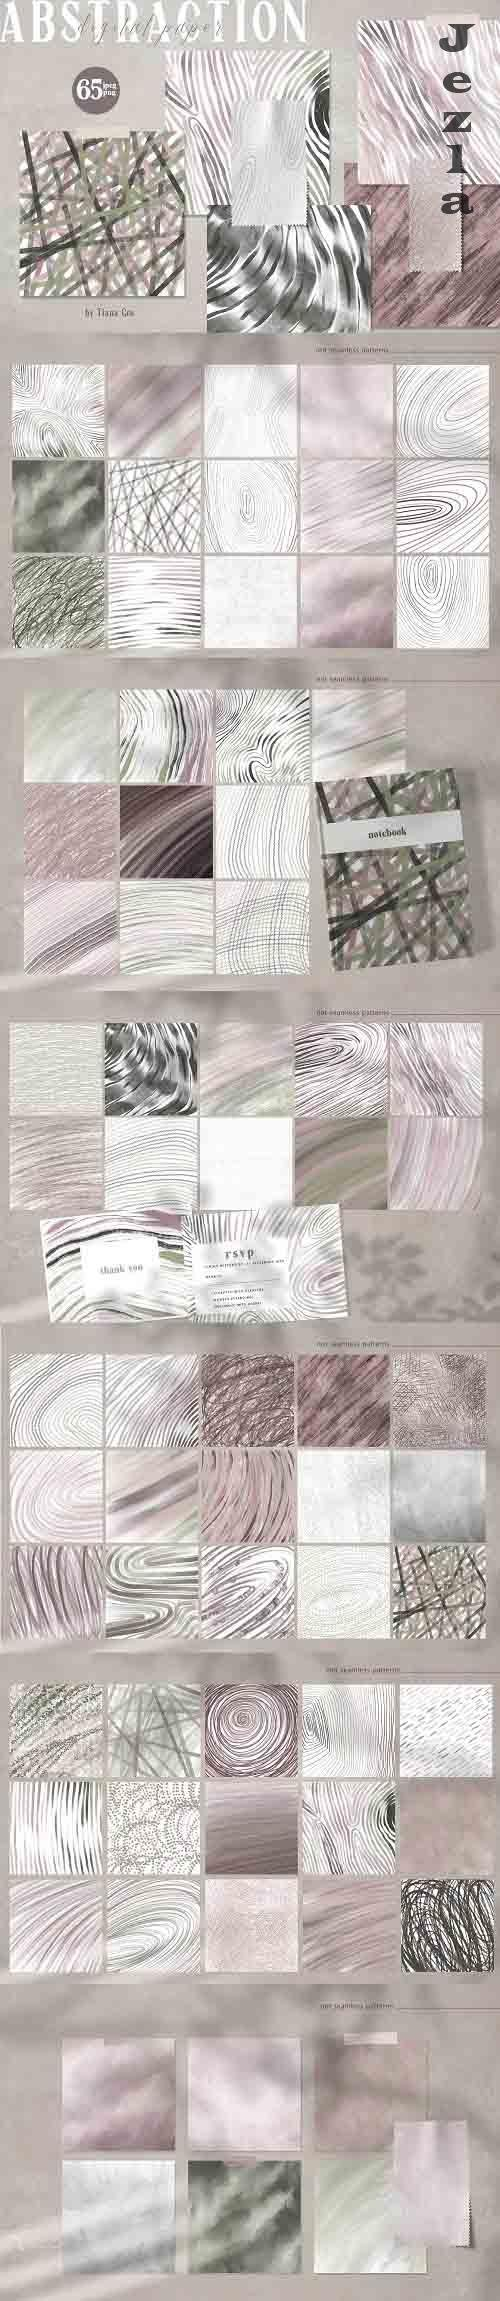 Abstract digital paper pack - 6206739